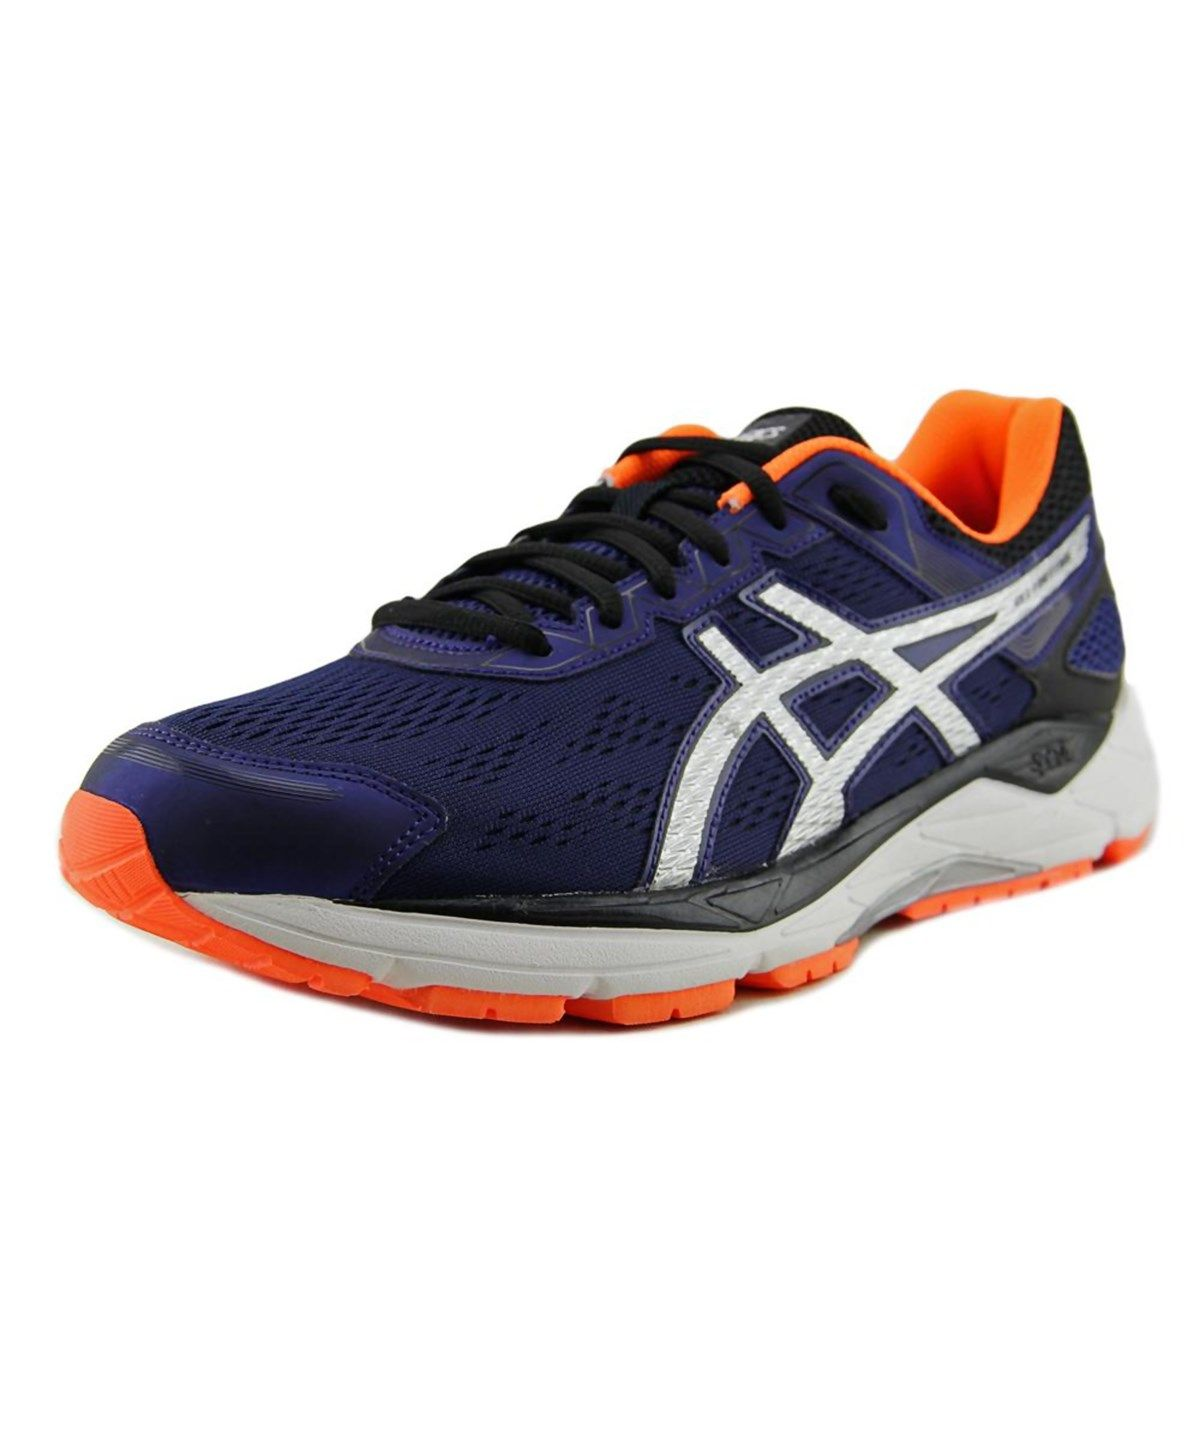 ASICS ASICS GEL-FORTITUDE 7 ROUND TOE SYNTHETIC RUNNING SHOE'. #asics #